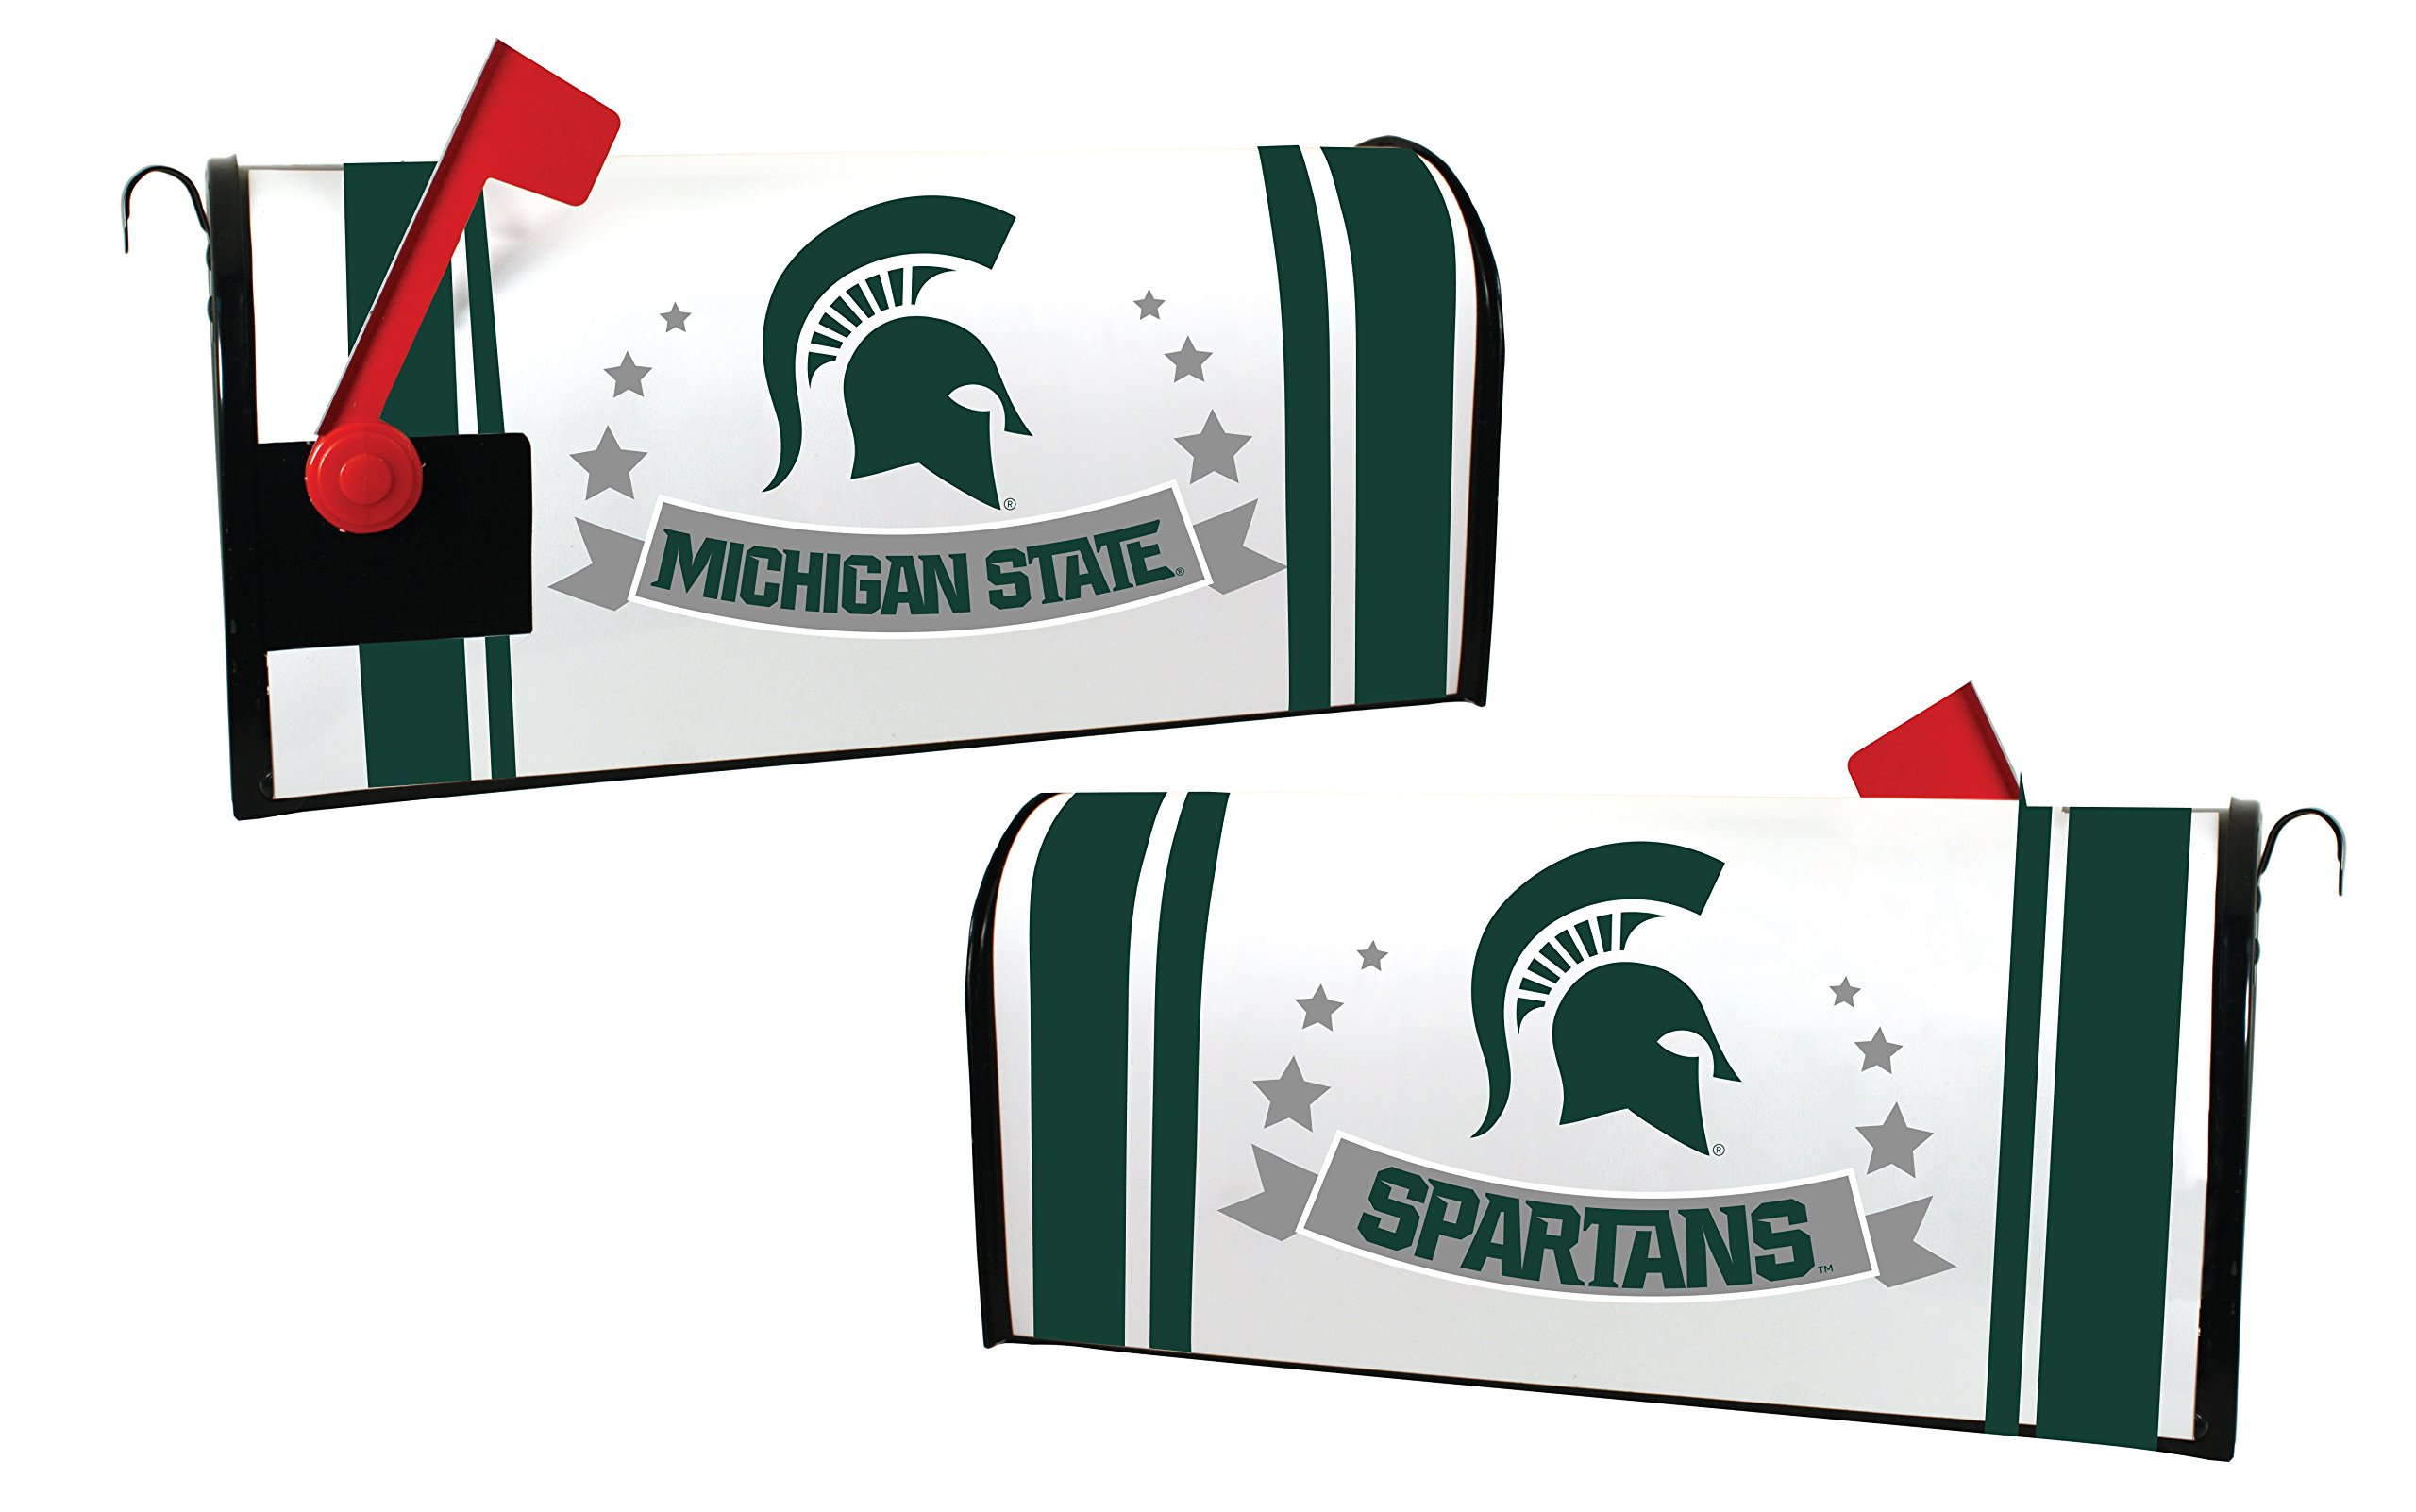 MICHIGAN STATE SPARTANS MAILBOX COVER-MICHIGAN STATE MAGNETIC MAIL BOX COVER-NEW FOR 2016!